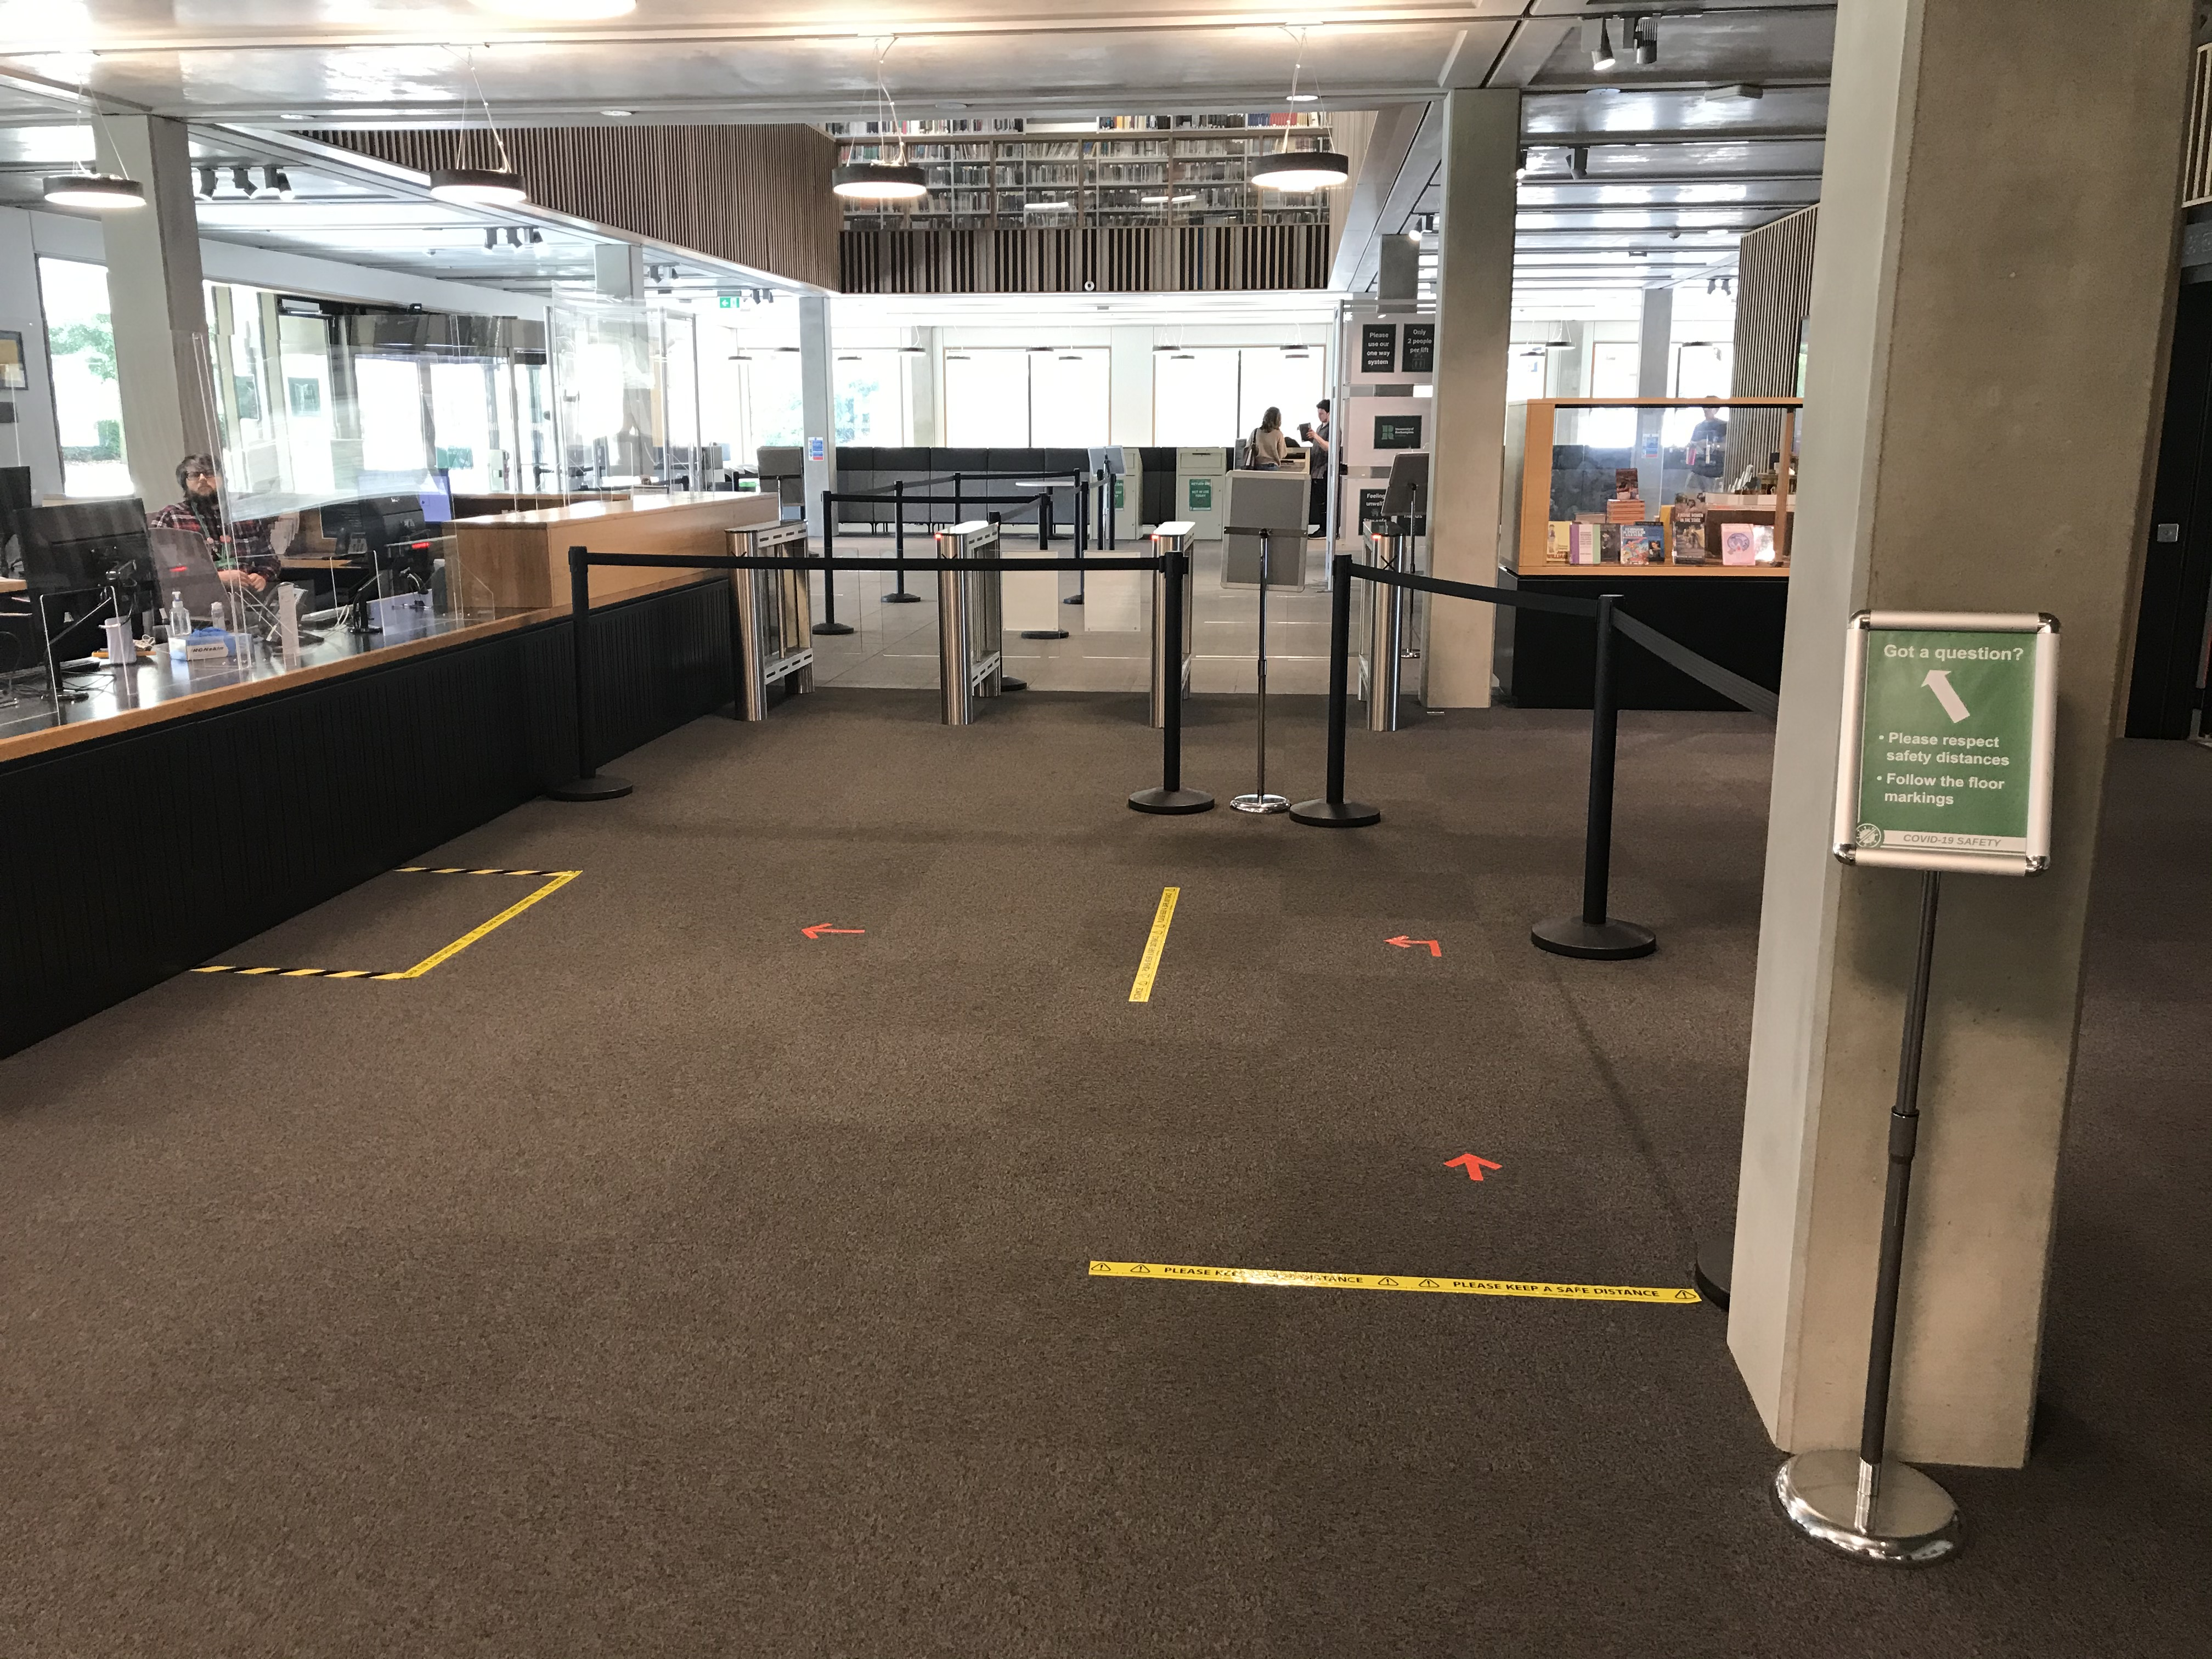 Taped sections of ground floor showing desk queue